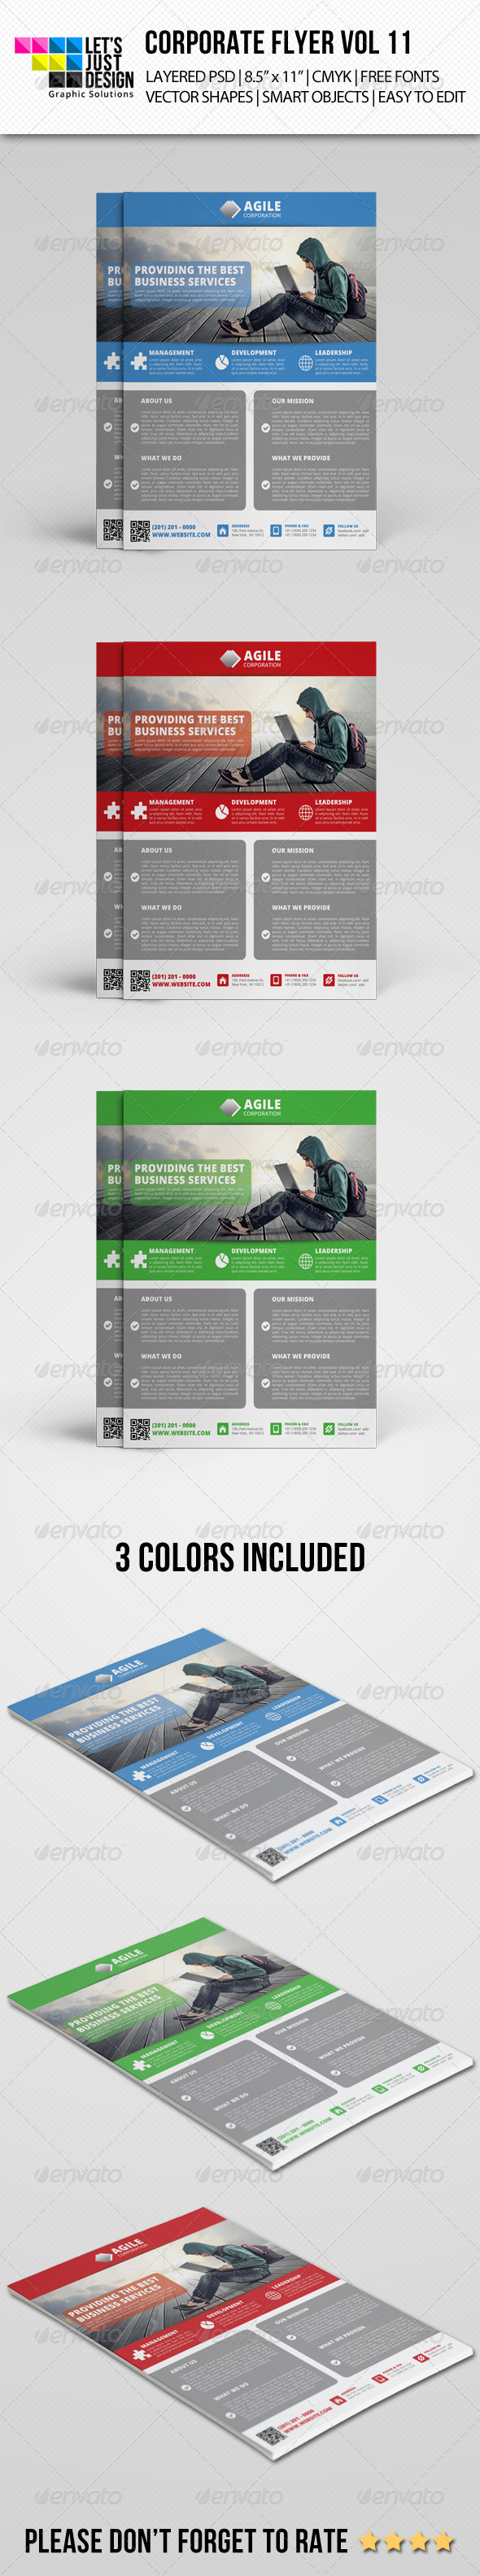 Corporate Flyer Template Vol 11 - Corporate Flyers